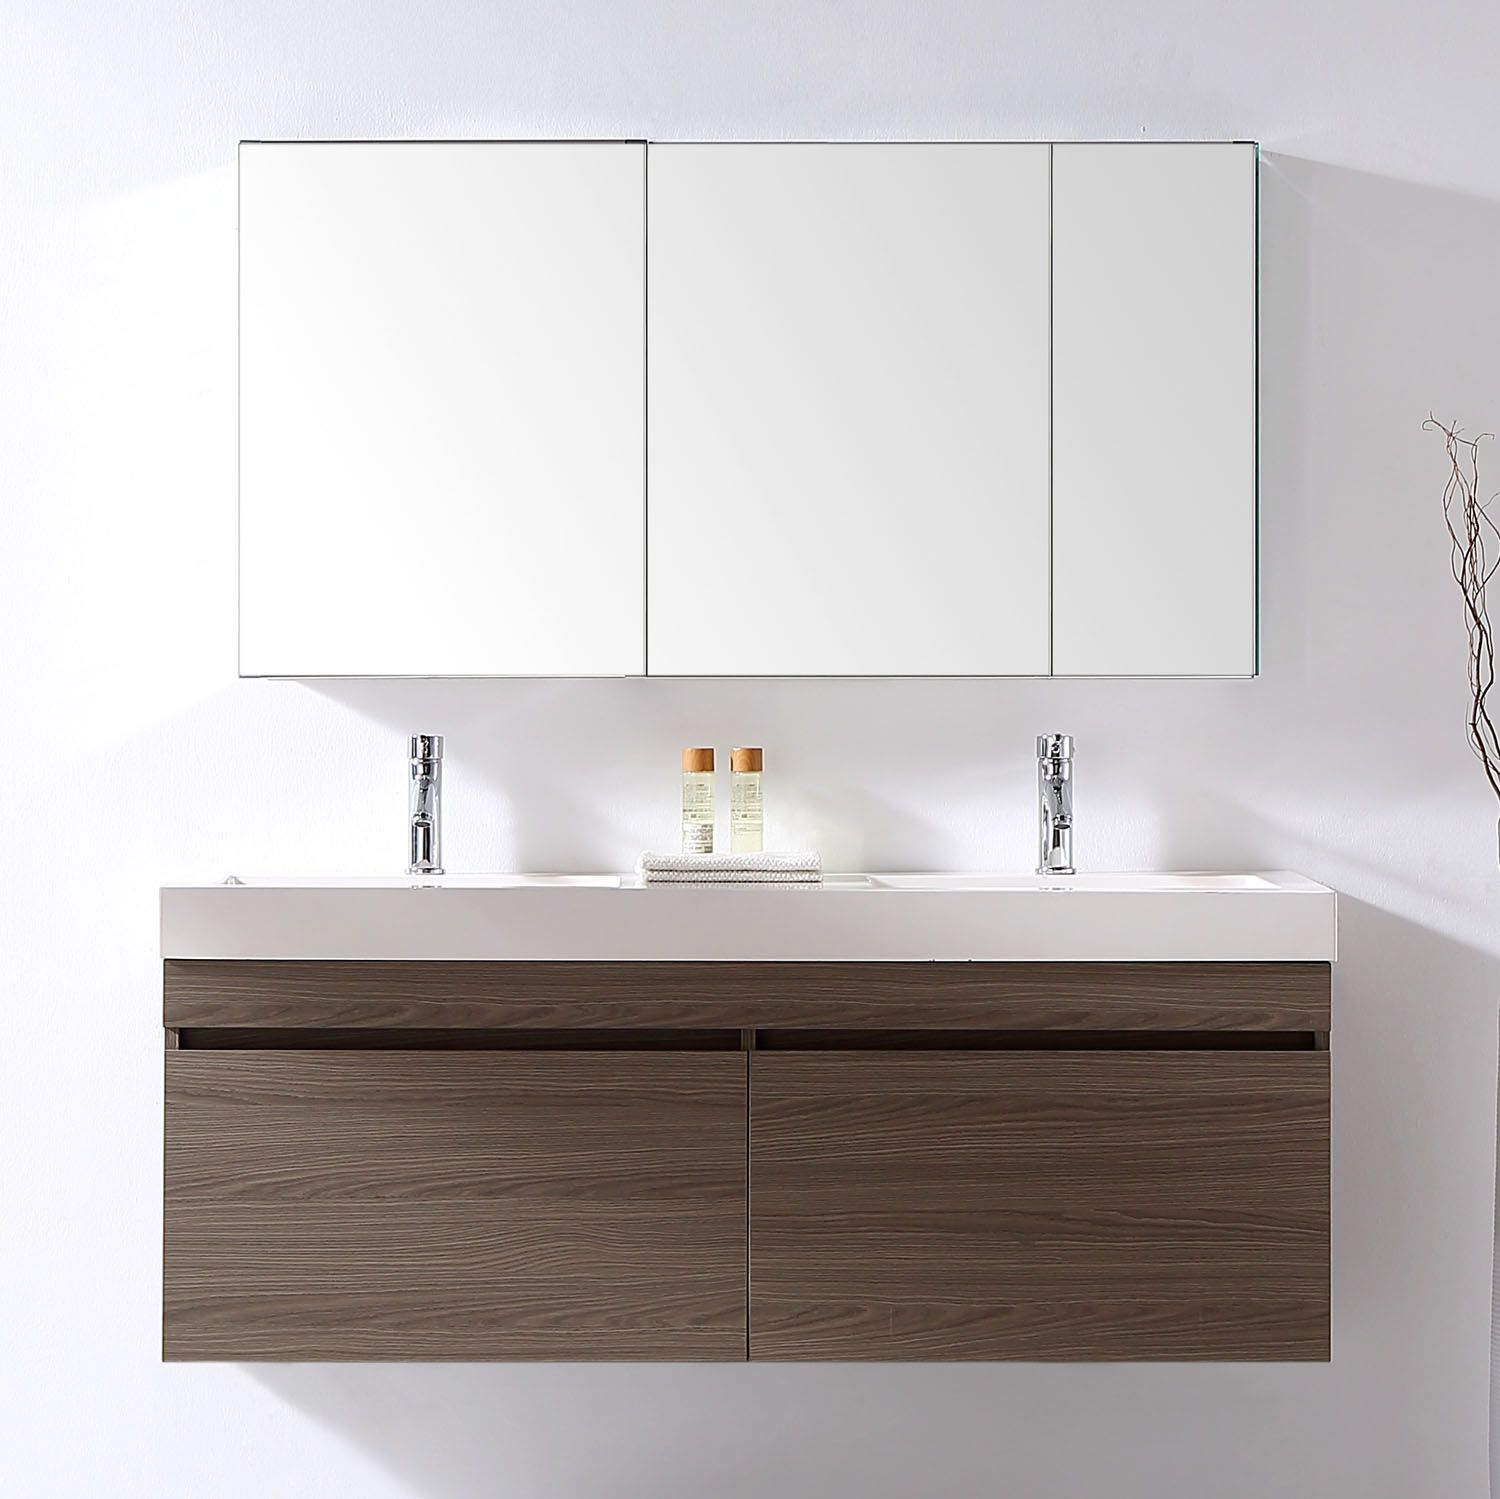 54 Inch Wall Mounted Double Sink Bathroom Vanity Grey Oak Finish